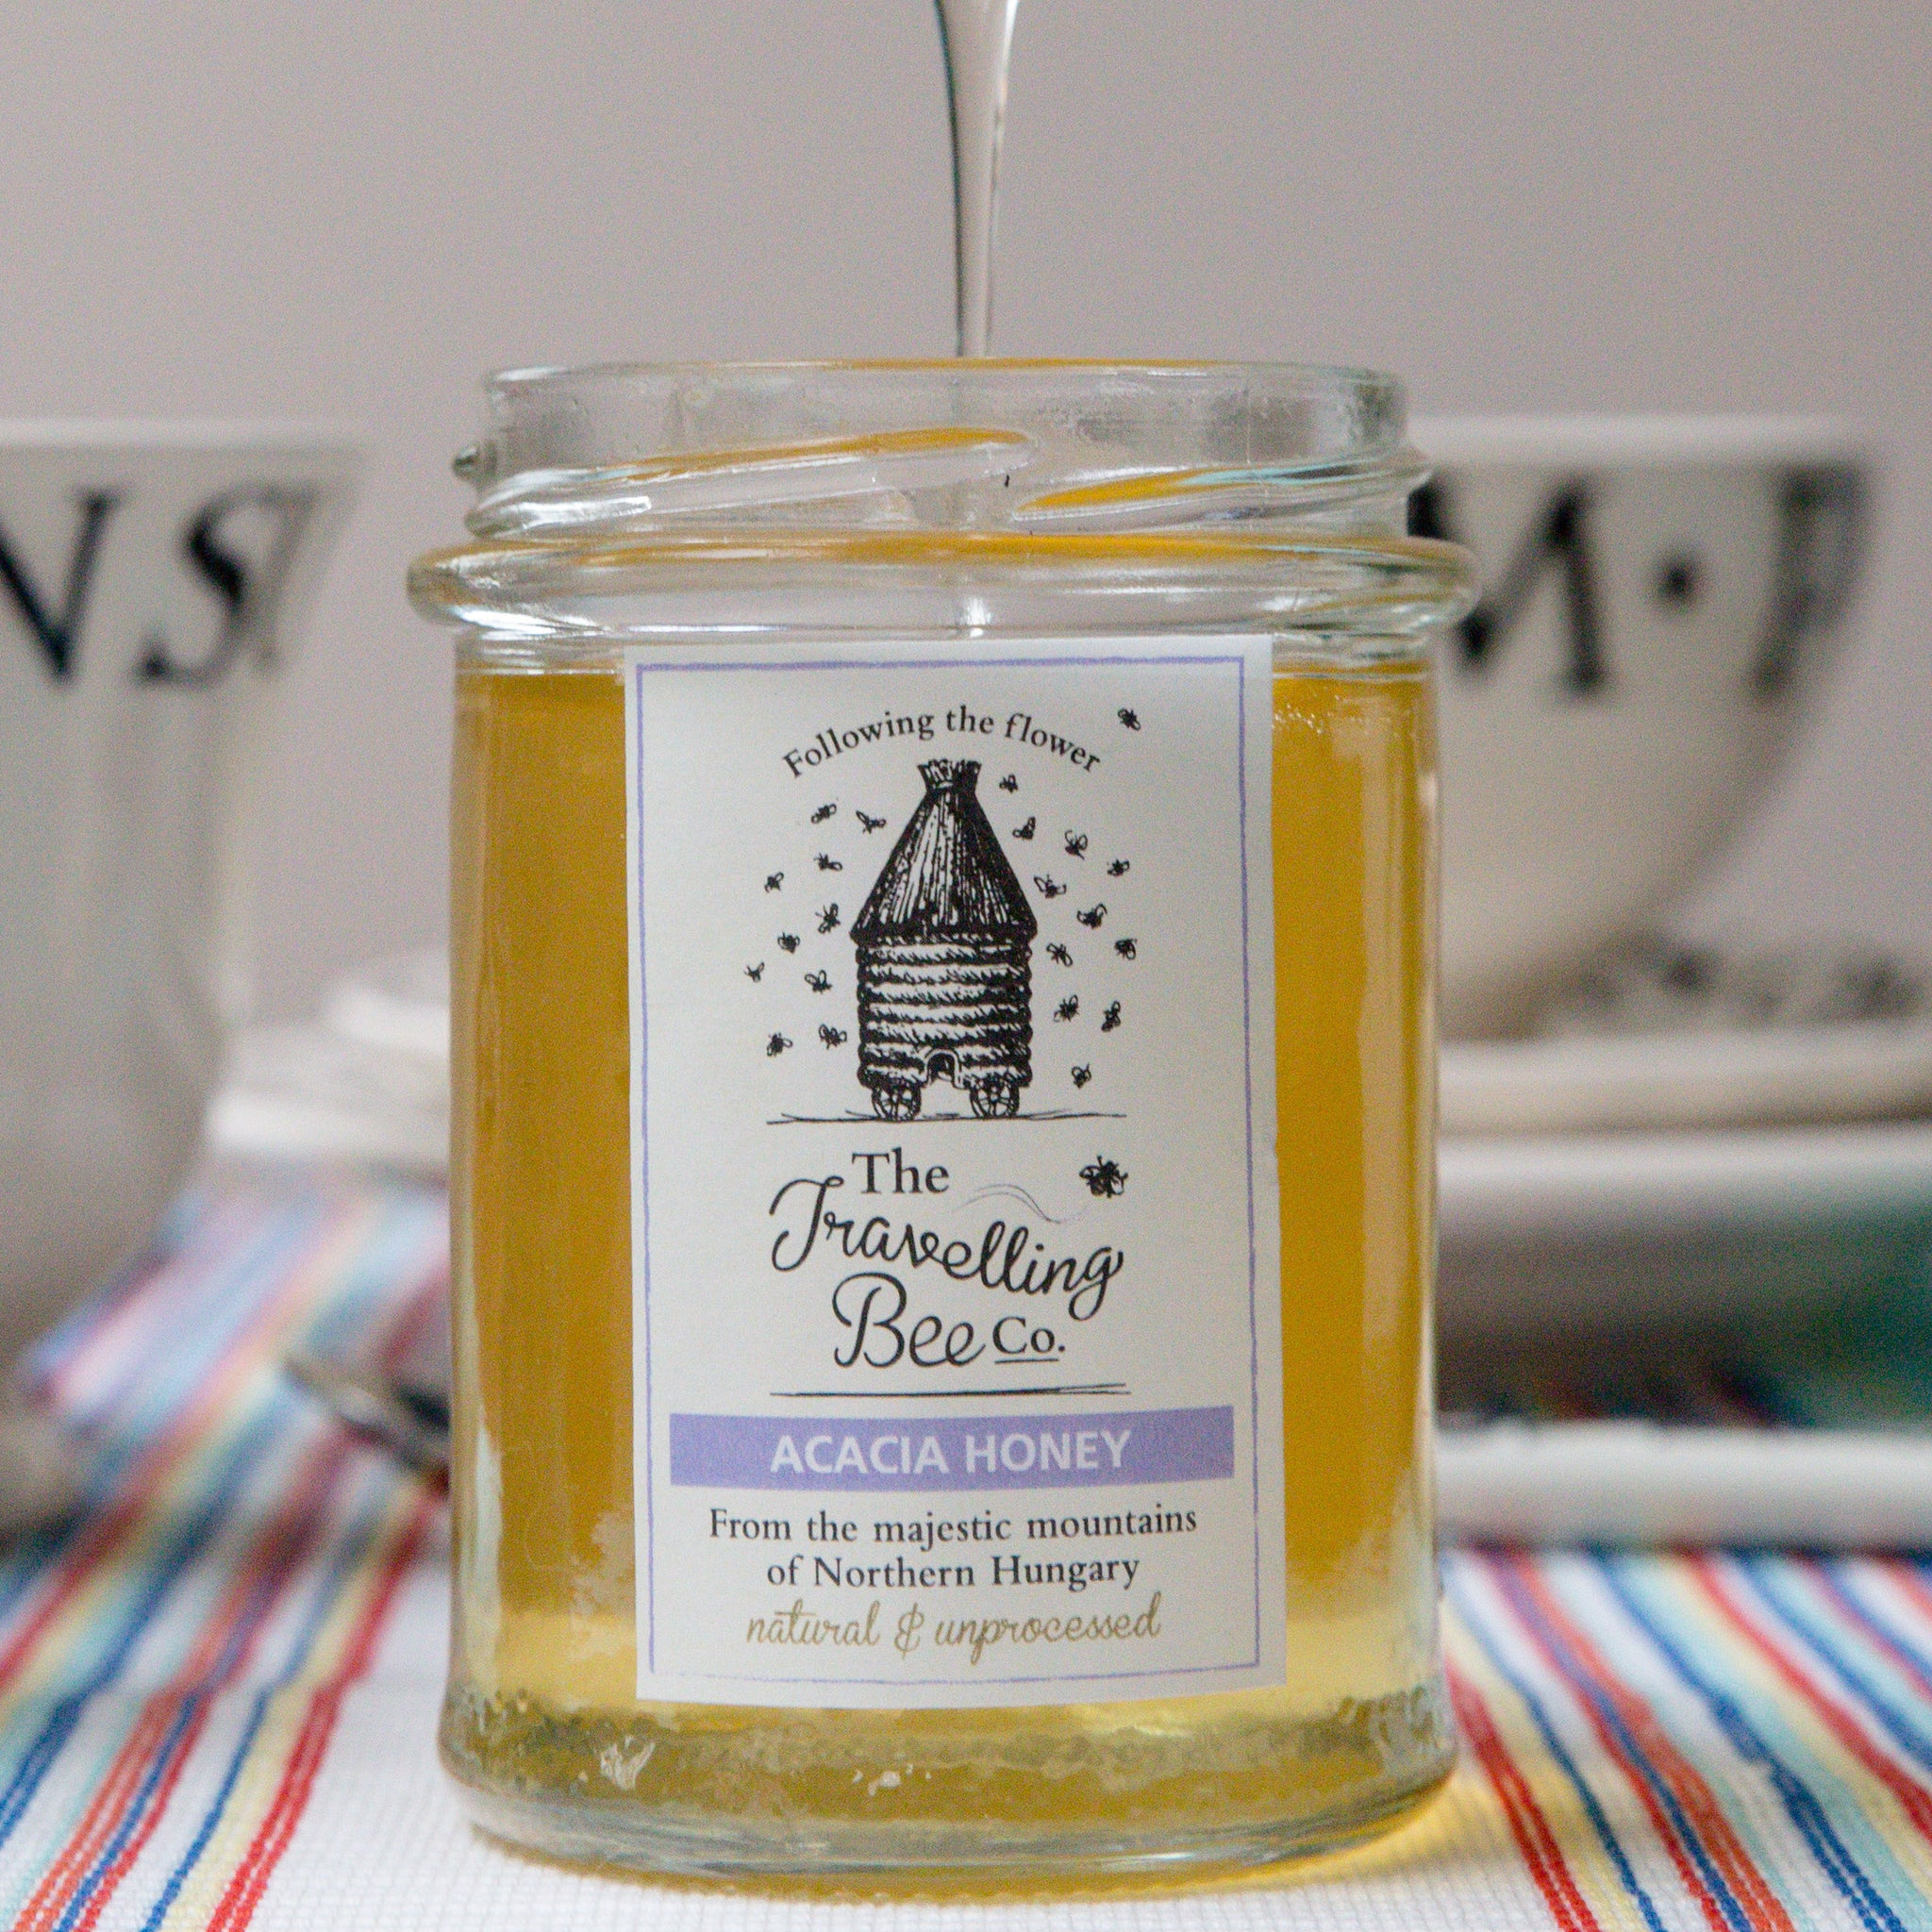 The Travelling Bee Company Acacia Honey